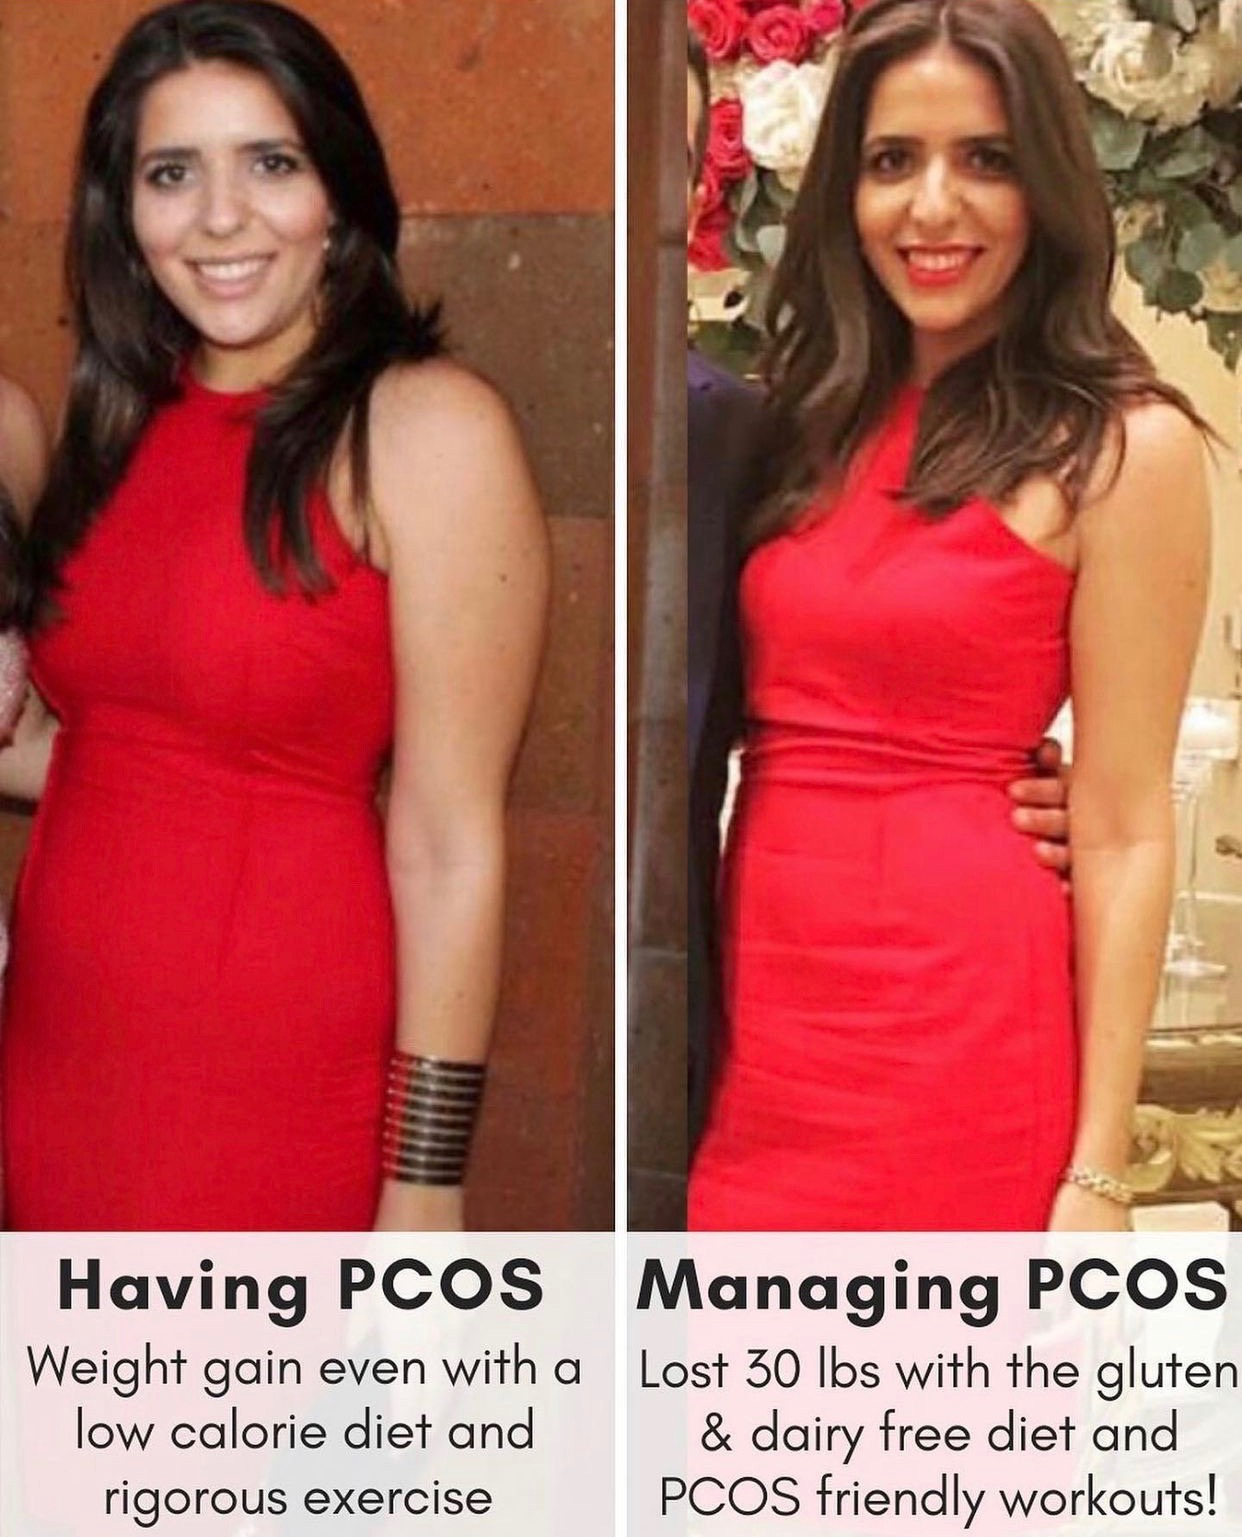 pcos weight loss